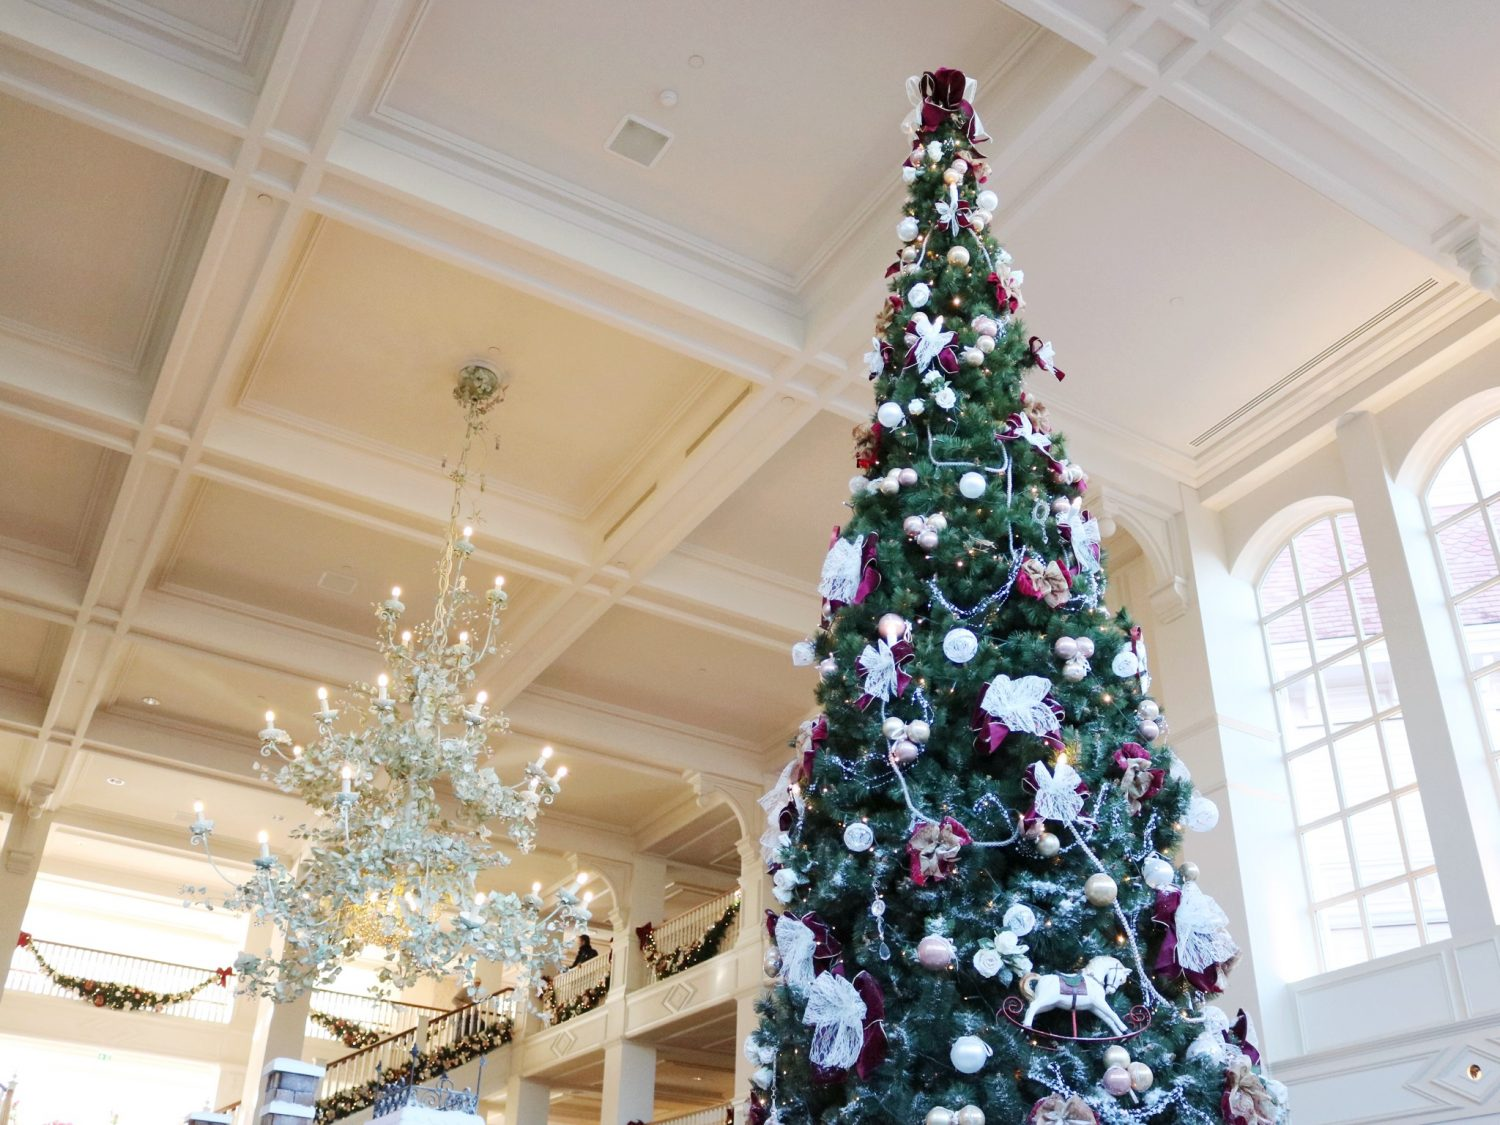 Disneyland Hotel during Christmas